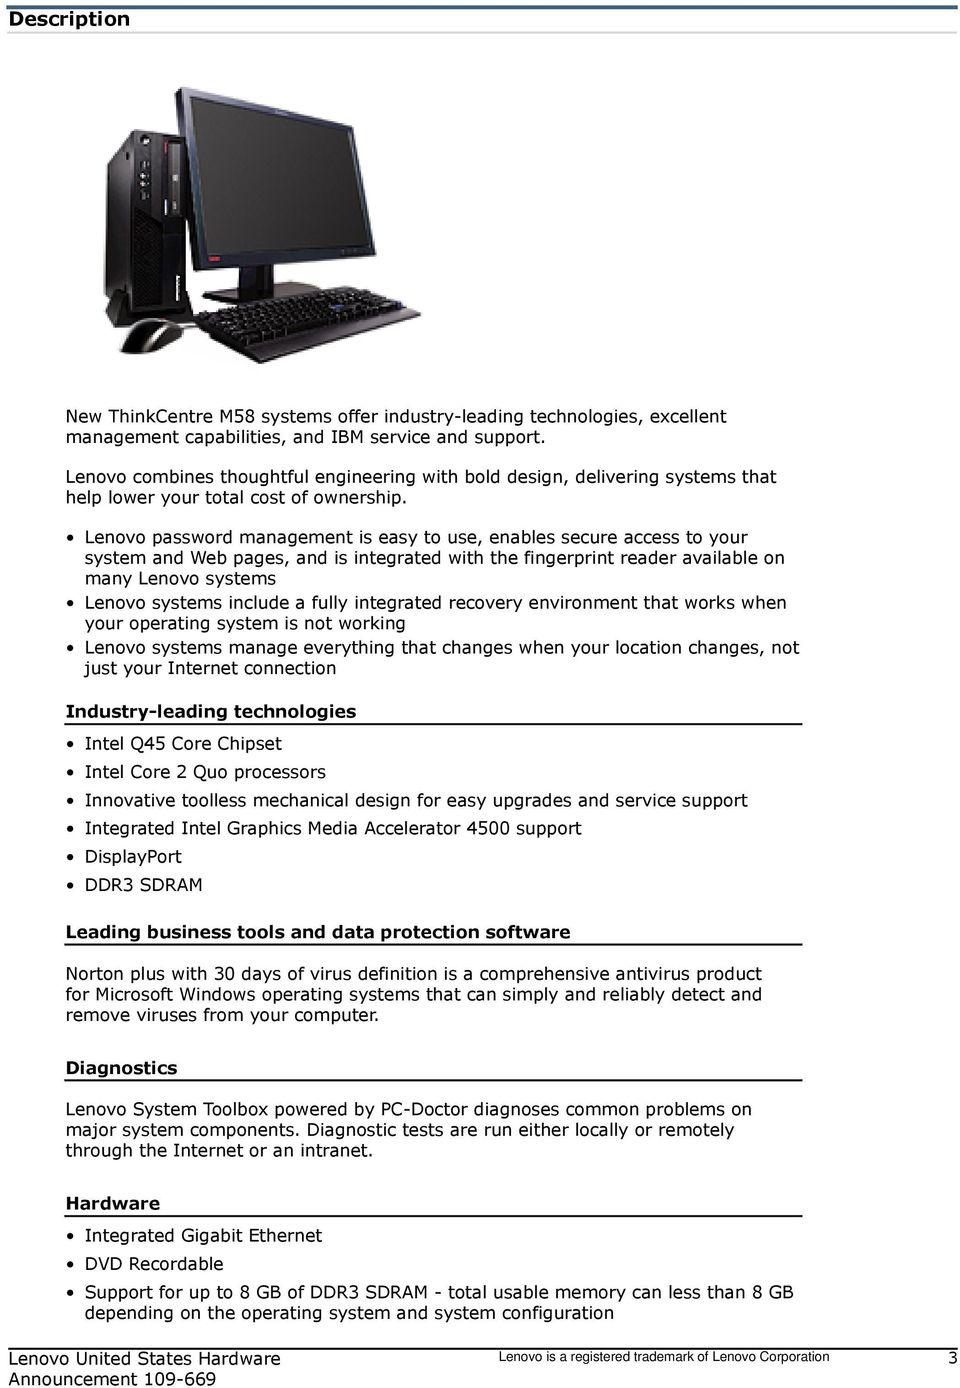 New ThinkCentre M58p models support Microsoft Windows 7 - PDF